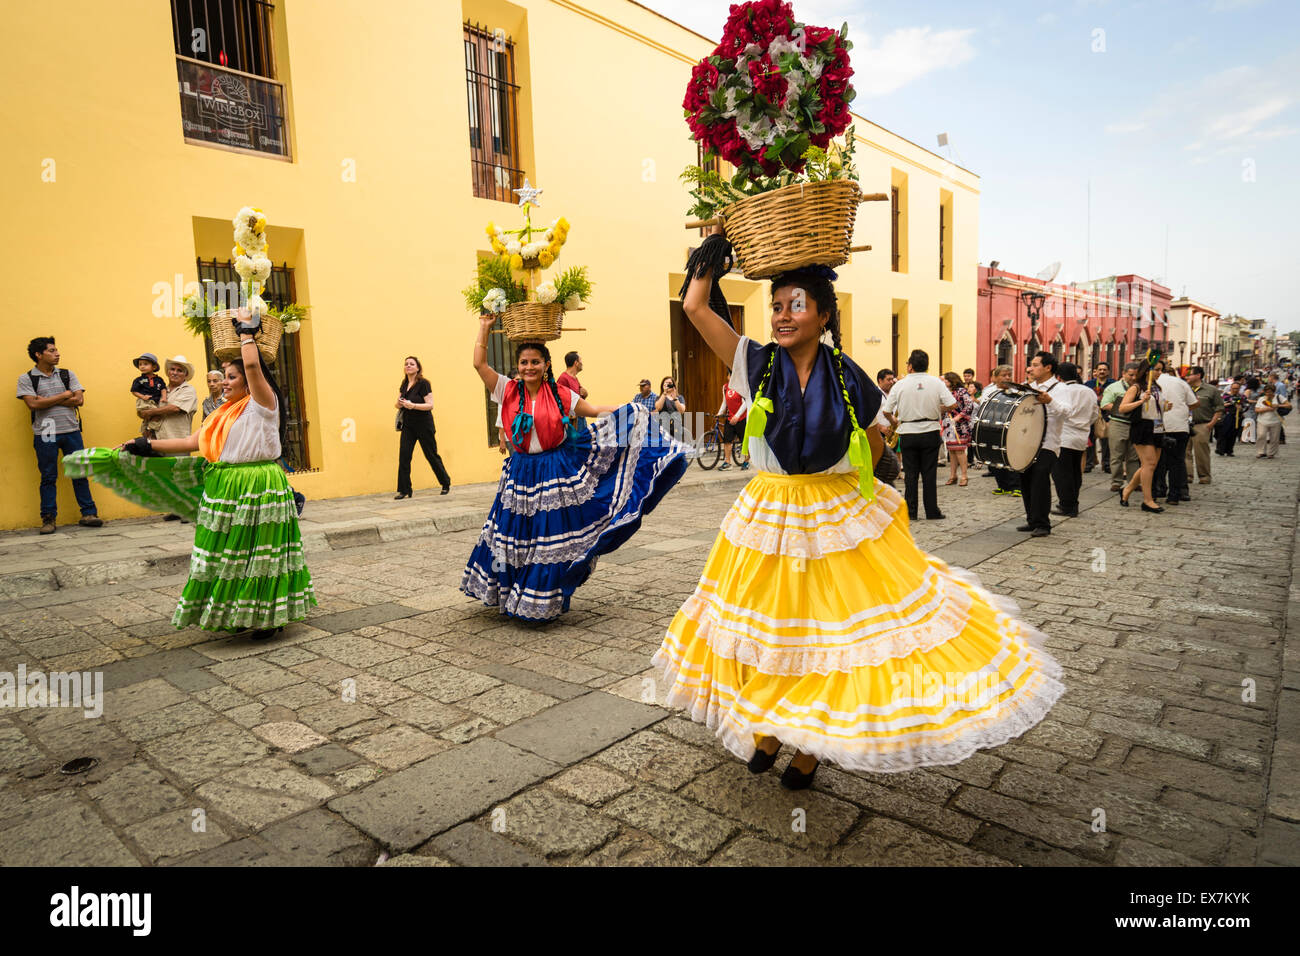 Women in traditional costume dancing and carrying flower baskets on their heads leading a parade at a festival in - Stock Image